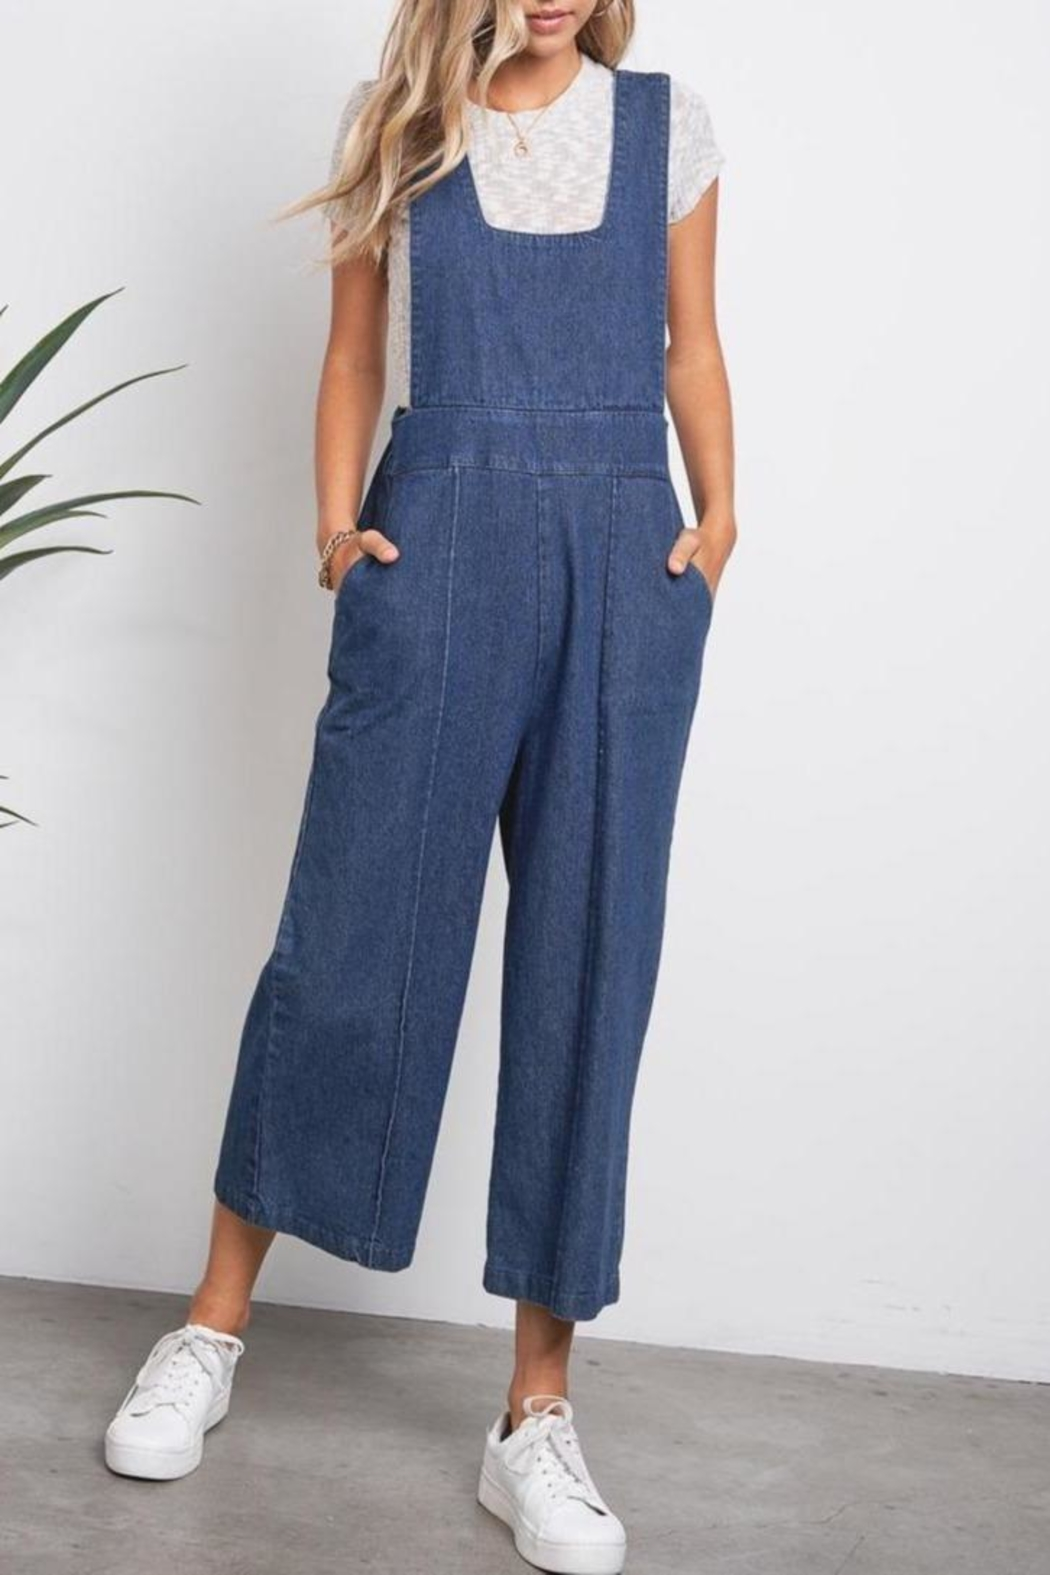 ShopGoldies Slouchy Denim Overalls - Main Image